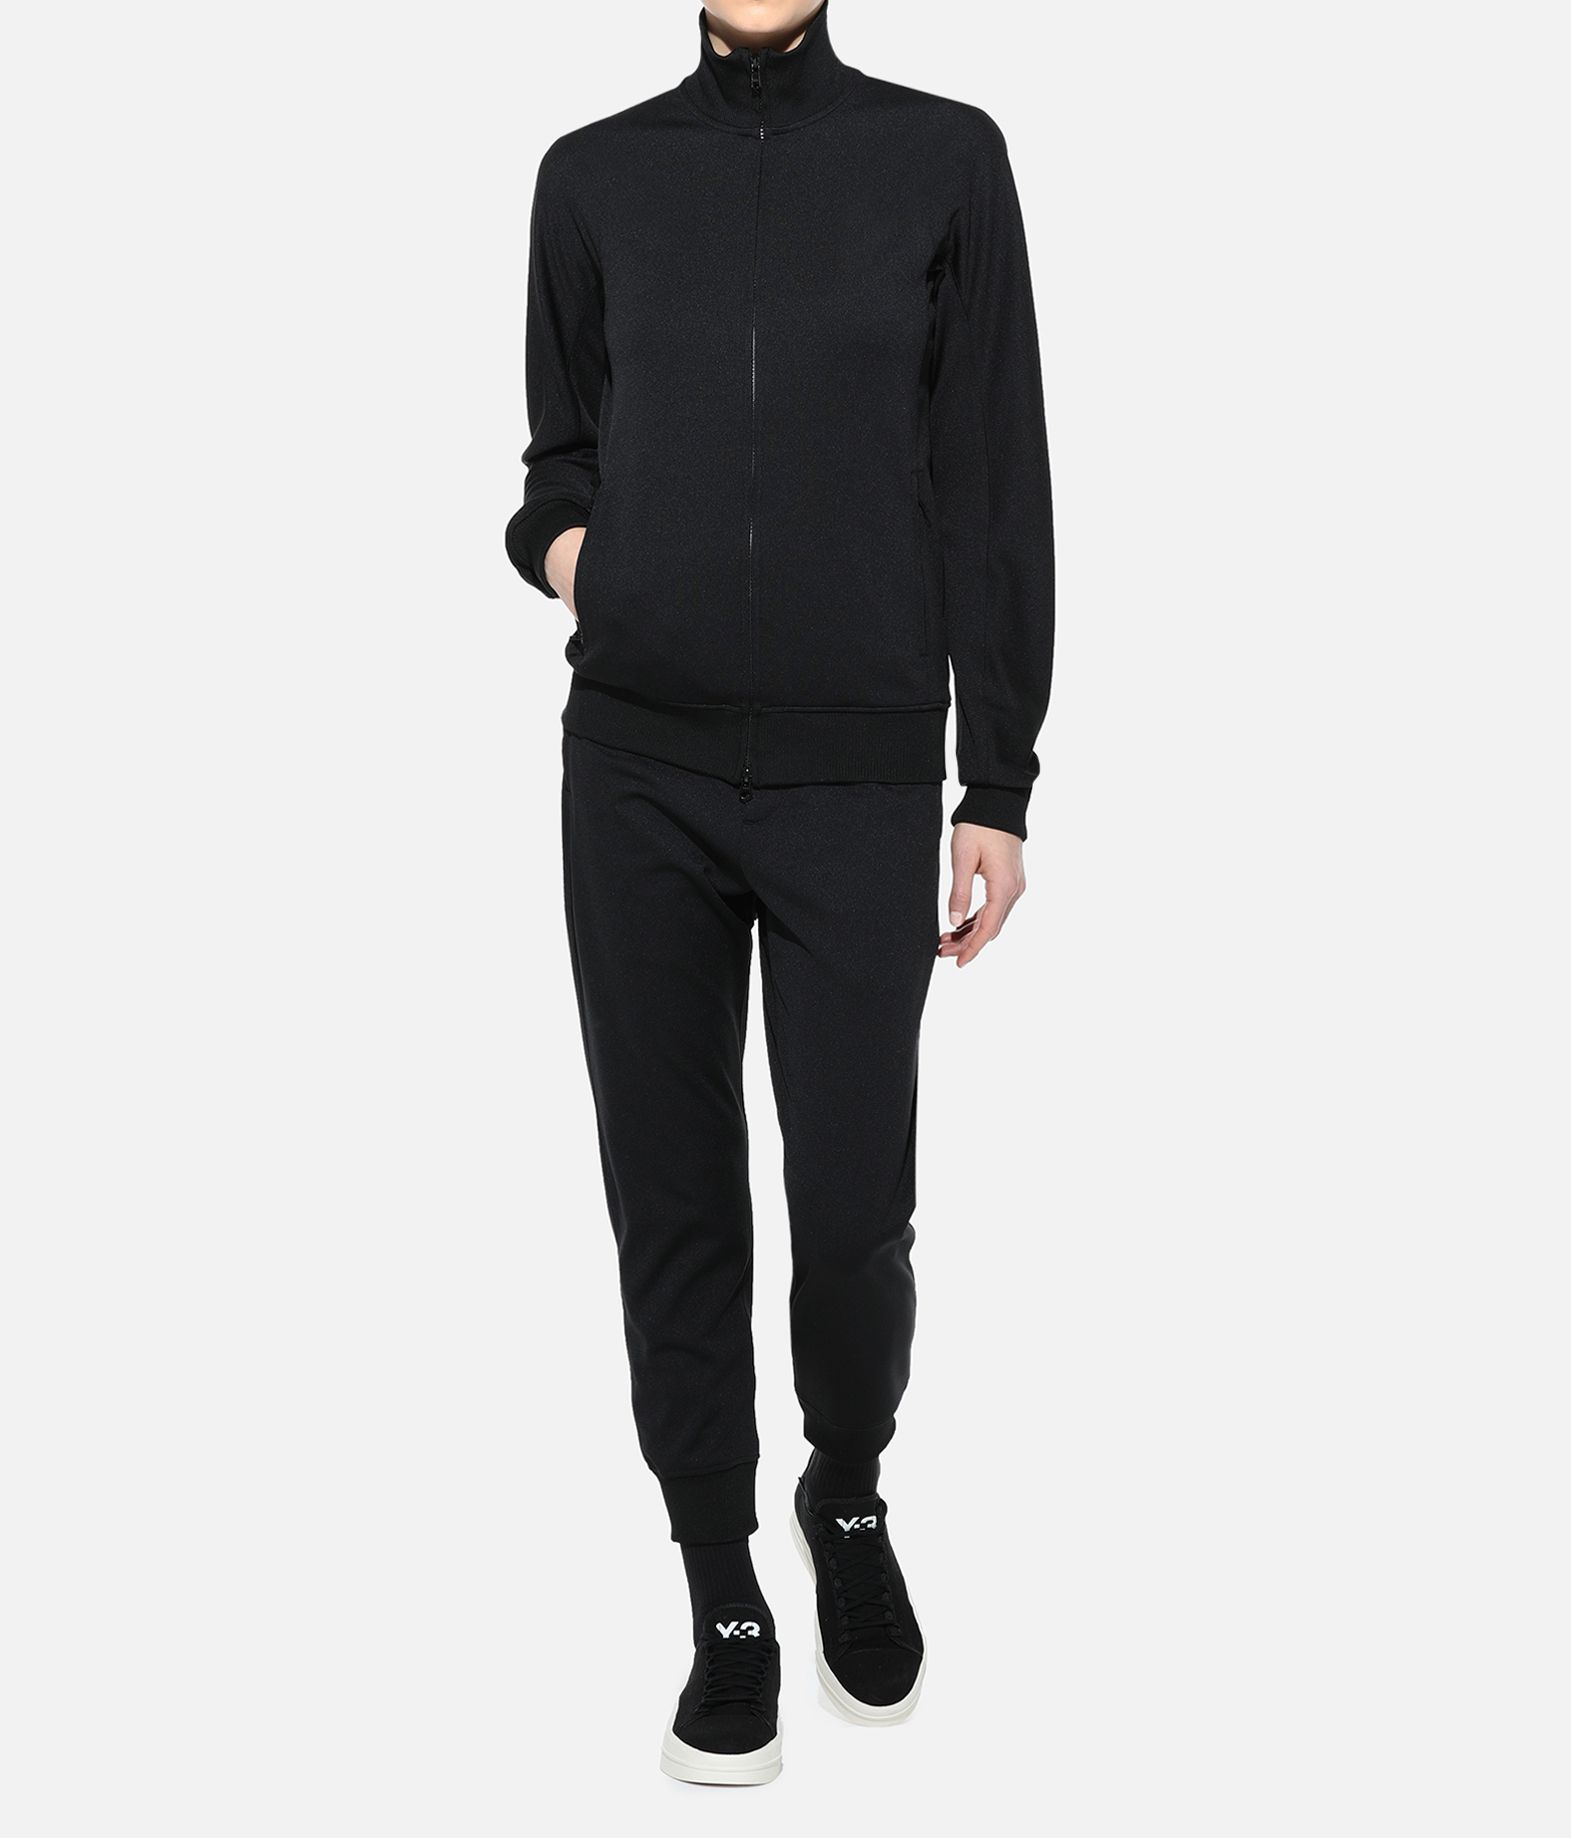 Y-3 Y-3 Classic Track Jacket Track top Woman a